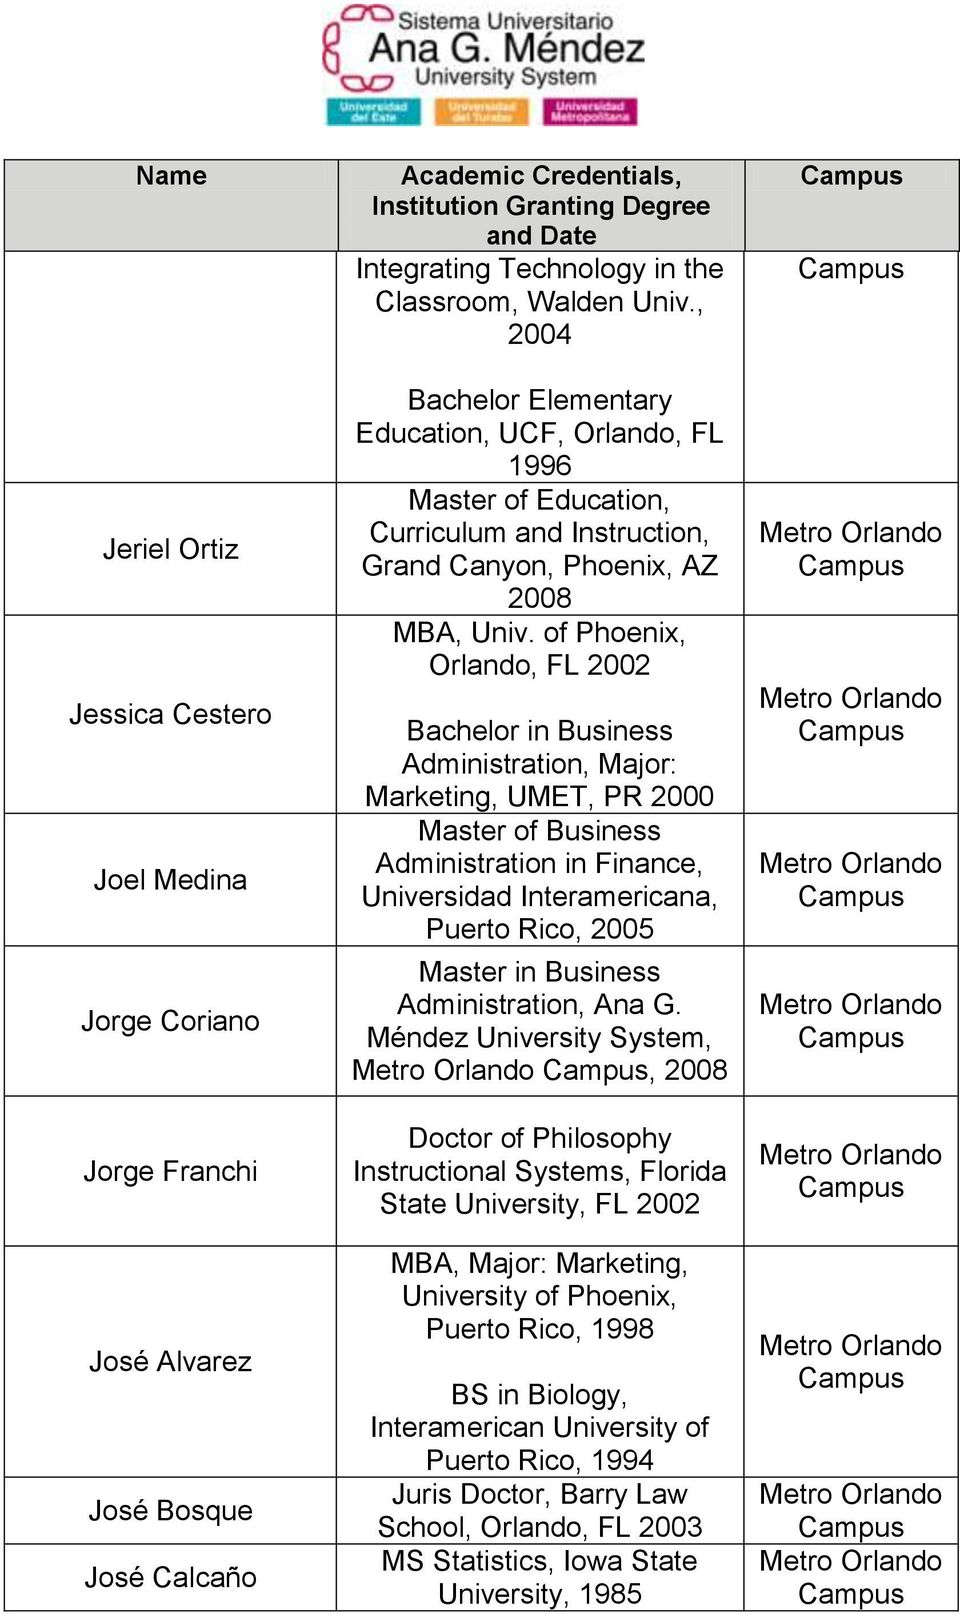 of Phoenix, Orlando, FL 2002 Bachelor in Business Administration, Major: Marketing, UMET, PR 2000 Master of Business Administration in Finance, Universidad Interamericana, Puerto Rico, 2005 Master in